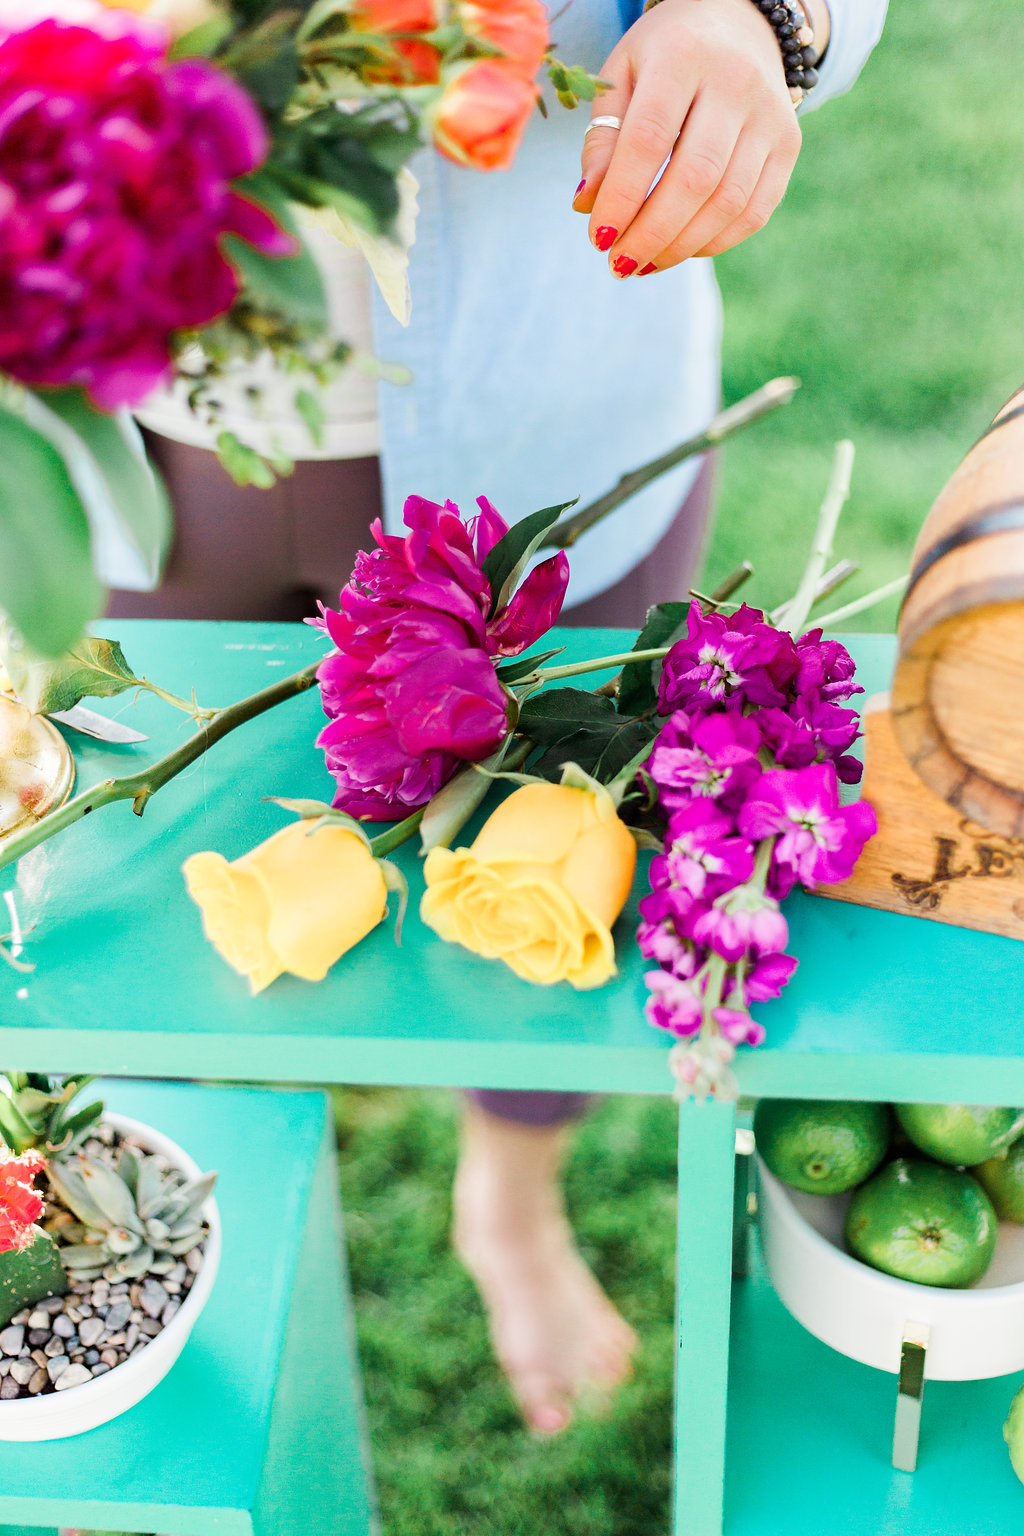 Why Hire A Florist For Your Wedding - Flower's aren't as glamorous as one may believe. Save yourself the stress.